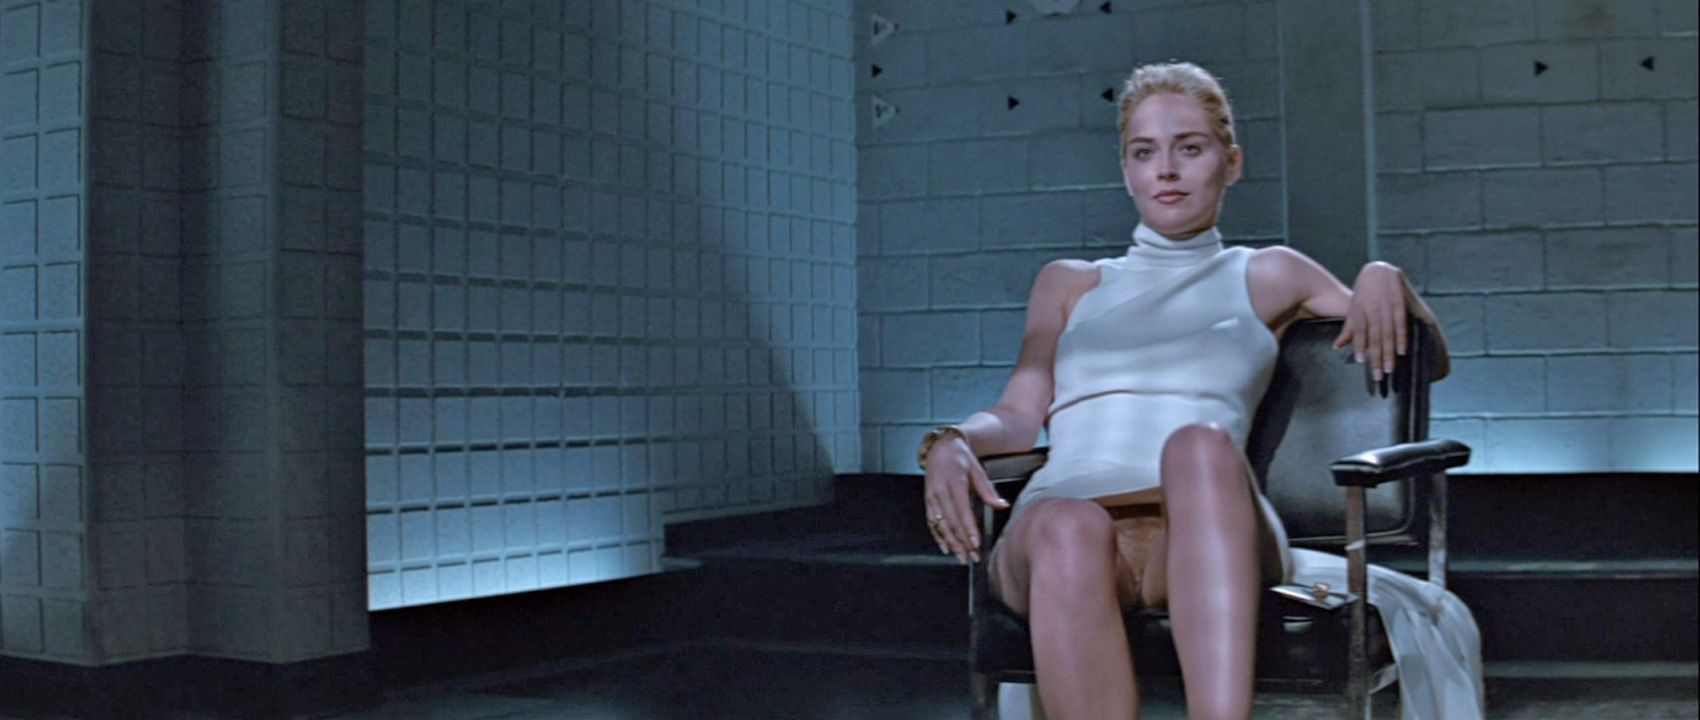 Sharon stone basic instinct compilation